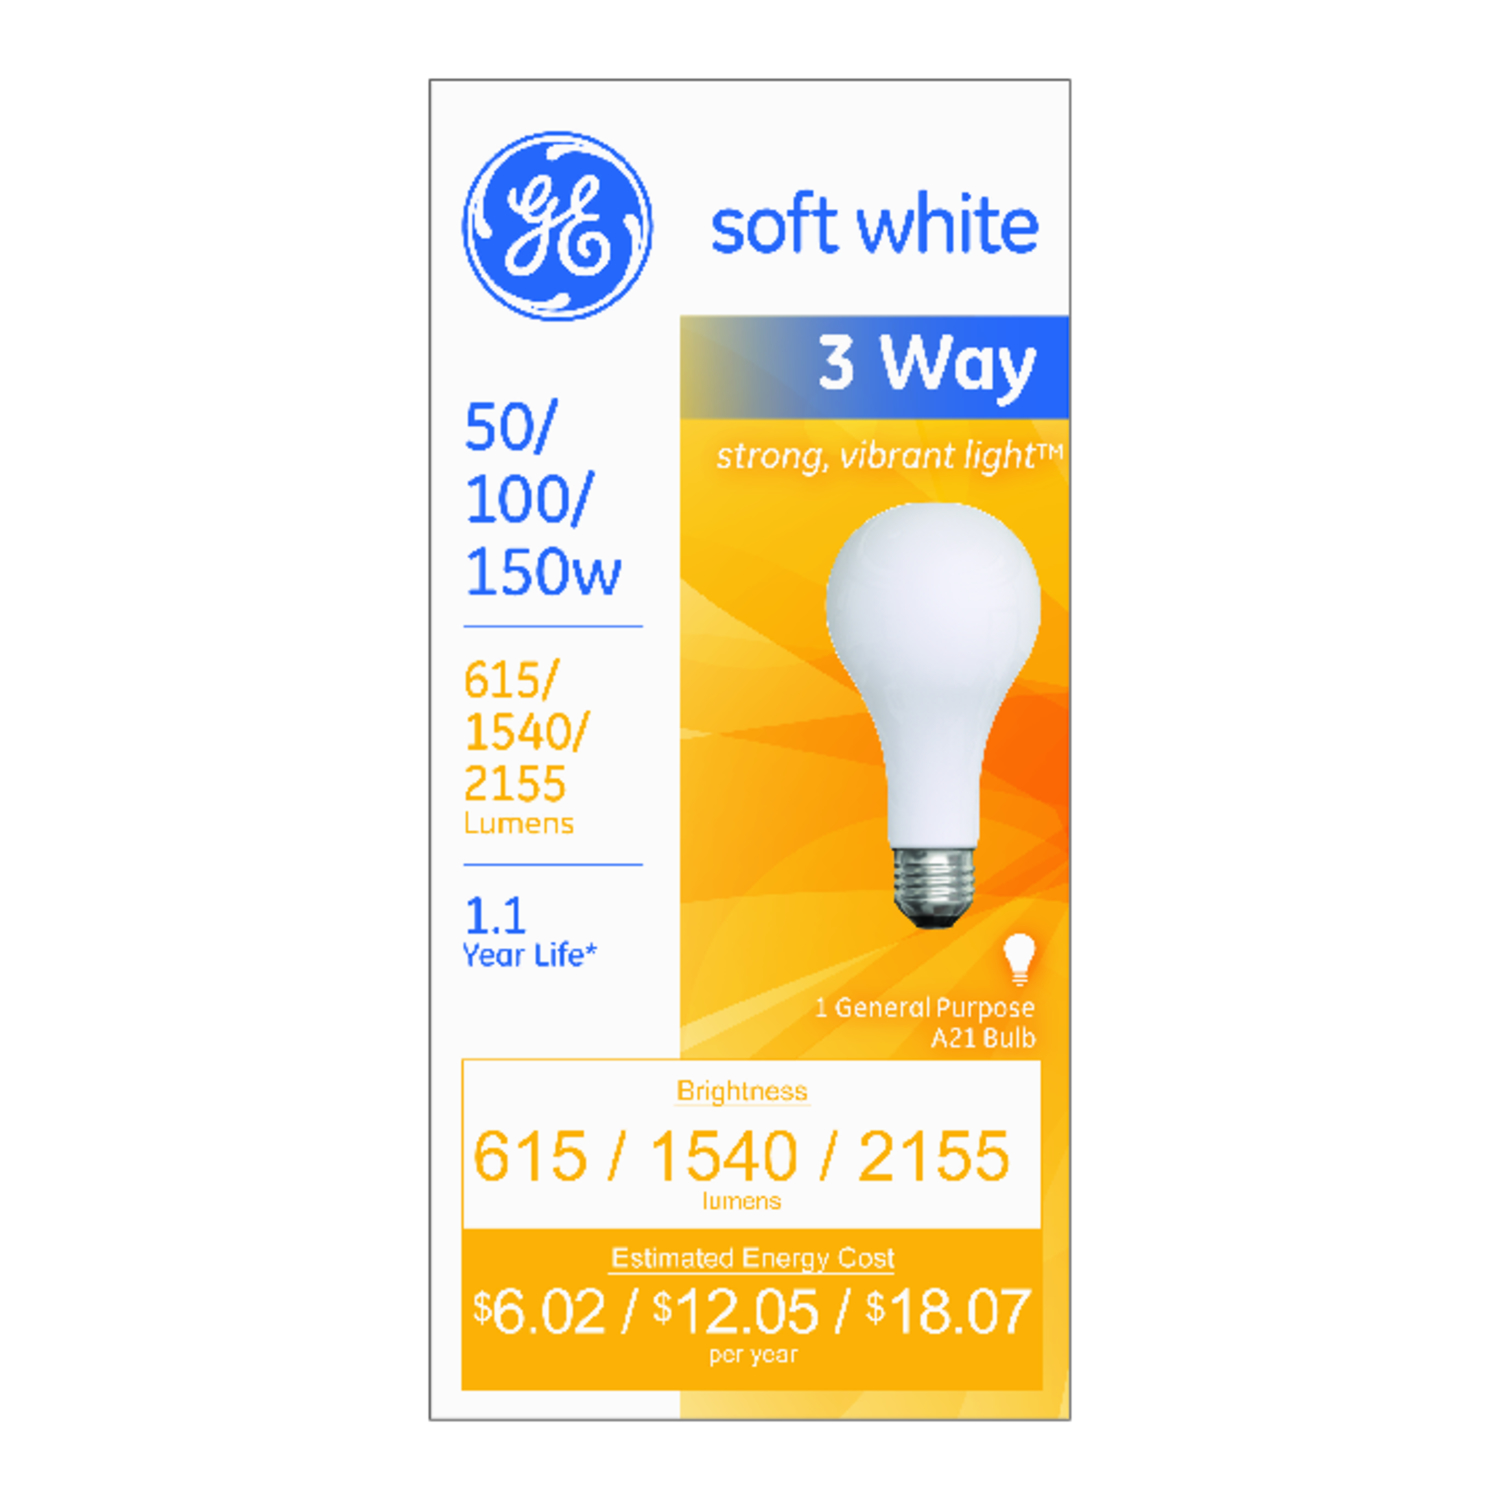 GE Lighting  50/100/150 watts A21  Incandescent Bulb  615/1,540/2,155 lumens Soft White  A-Line  1 p